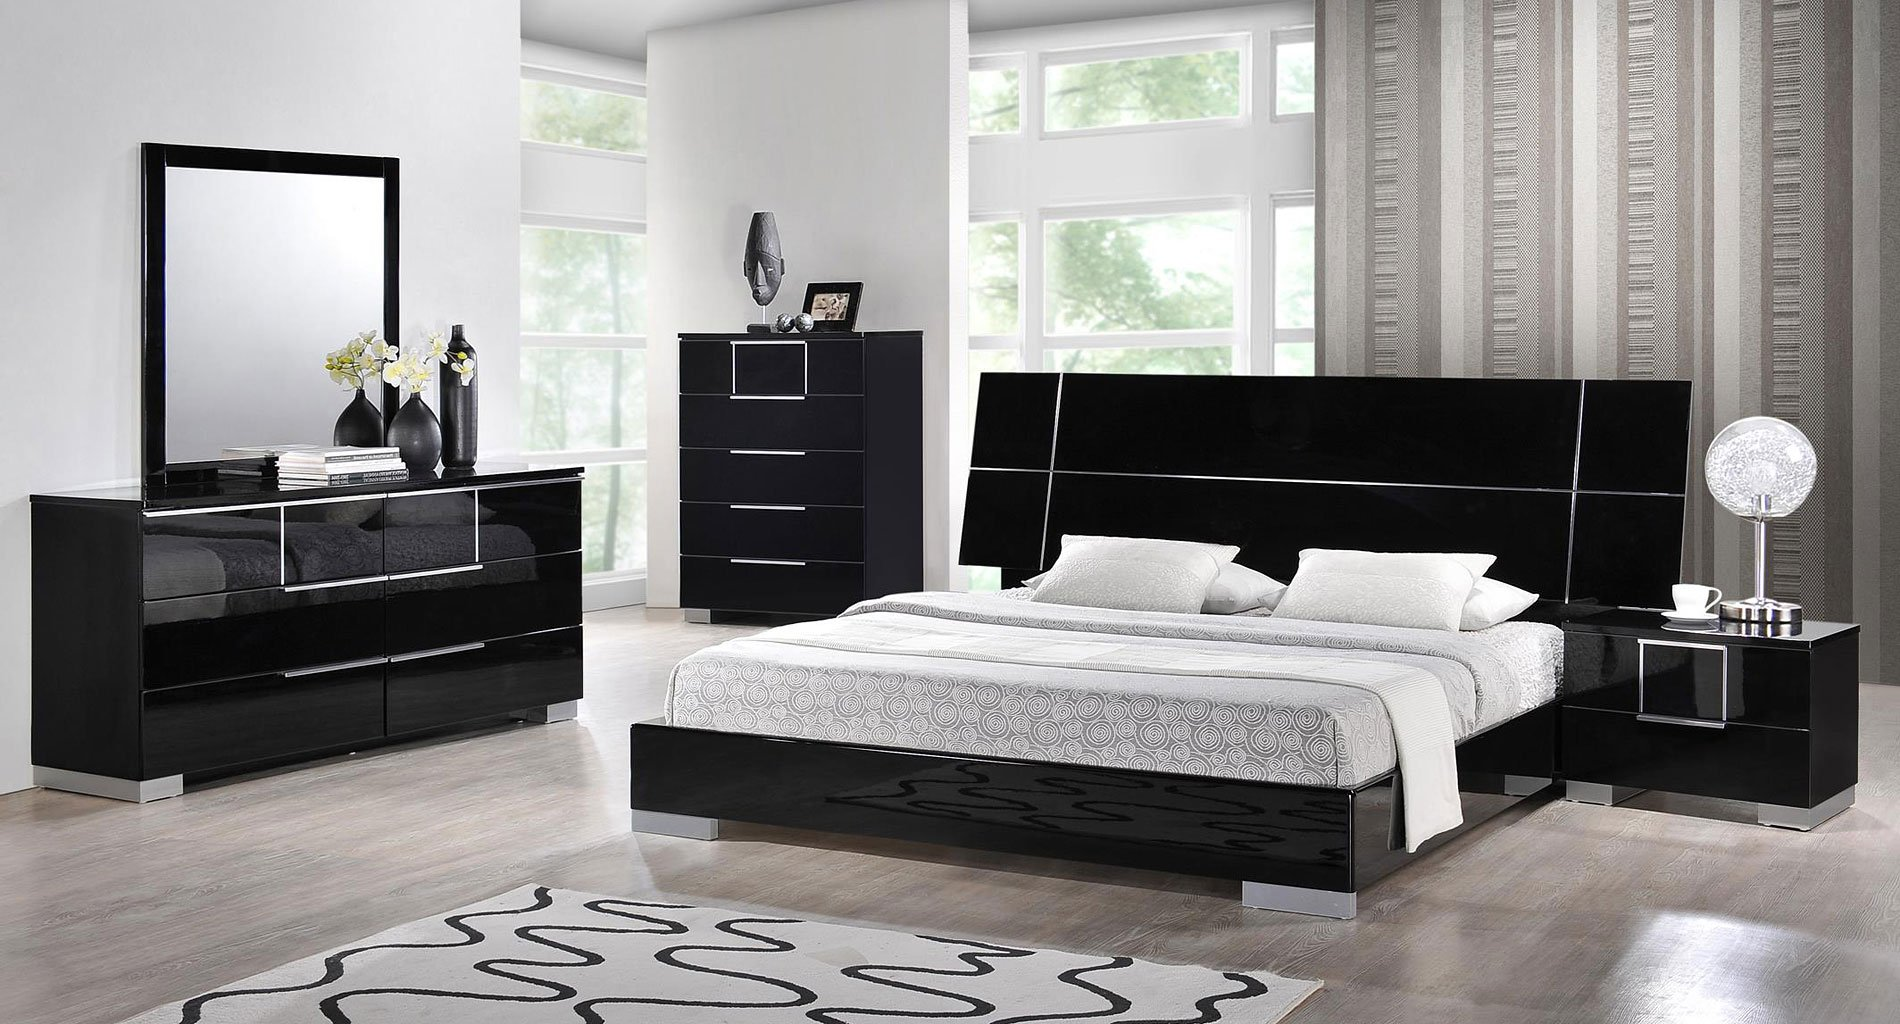 Hailey Low Profile Bedroom Set By Global Furniture